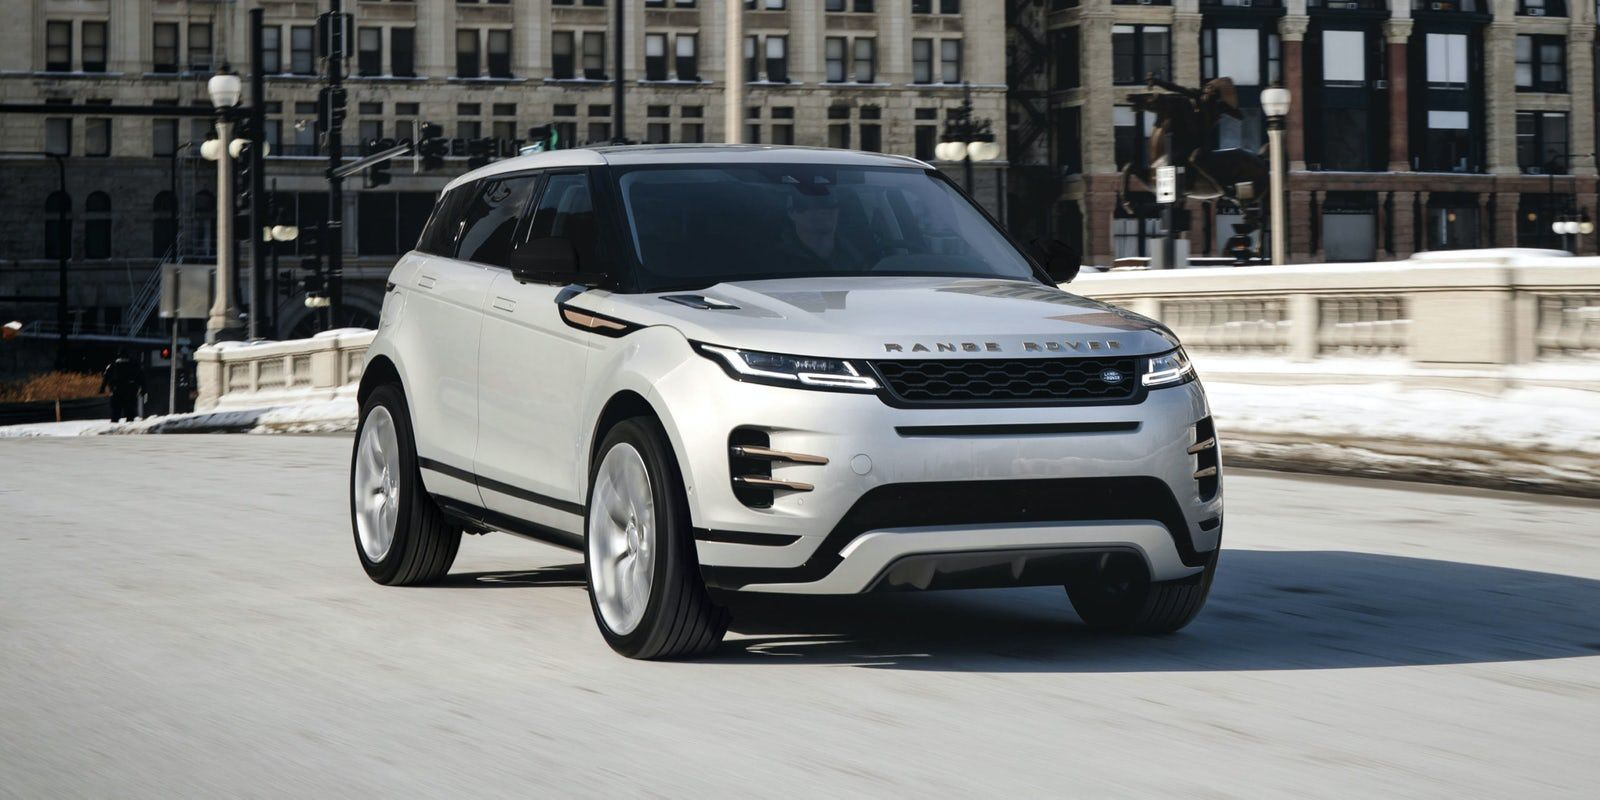 2022 Range Rover Evoque: Everything We Know So Far | HotCars